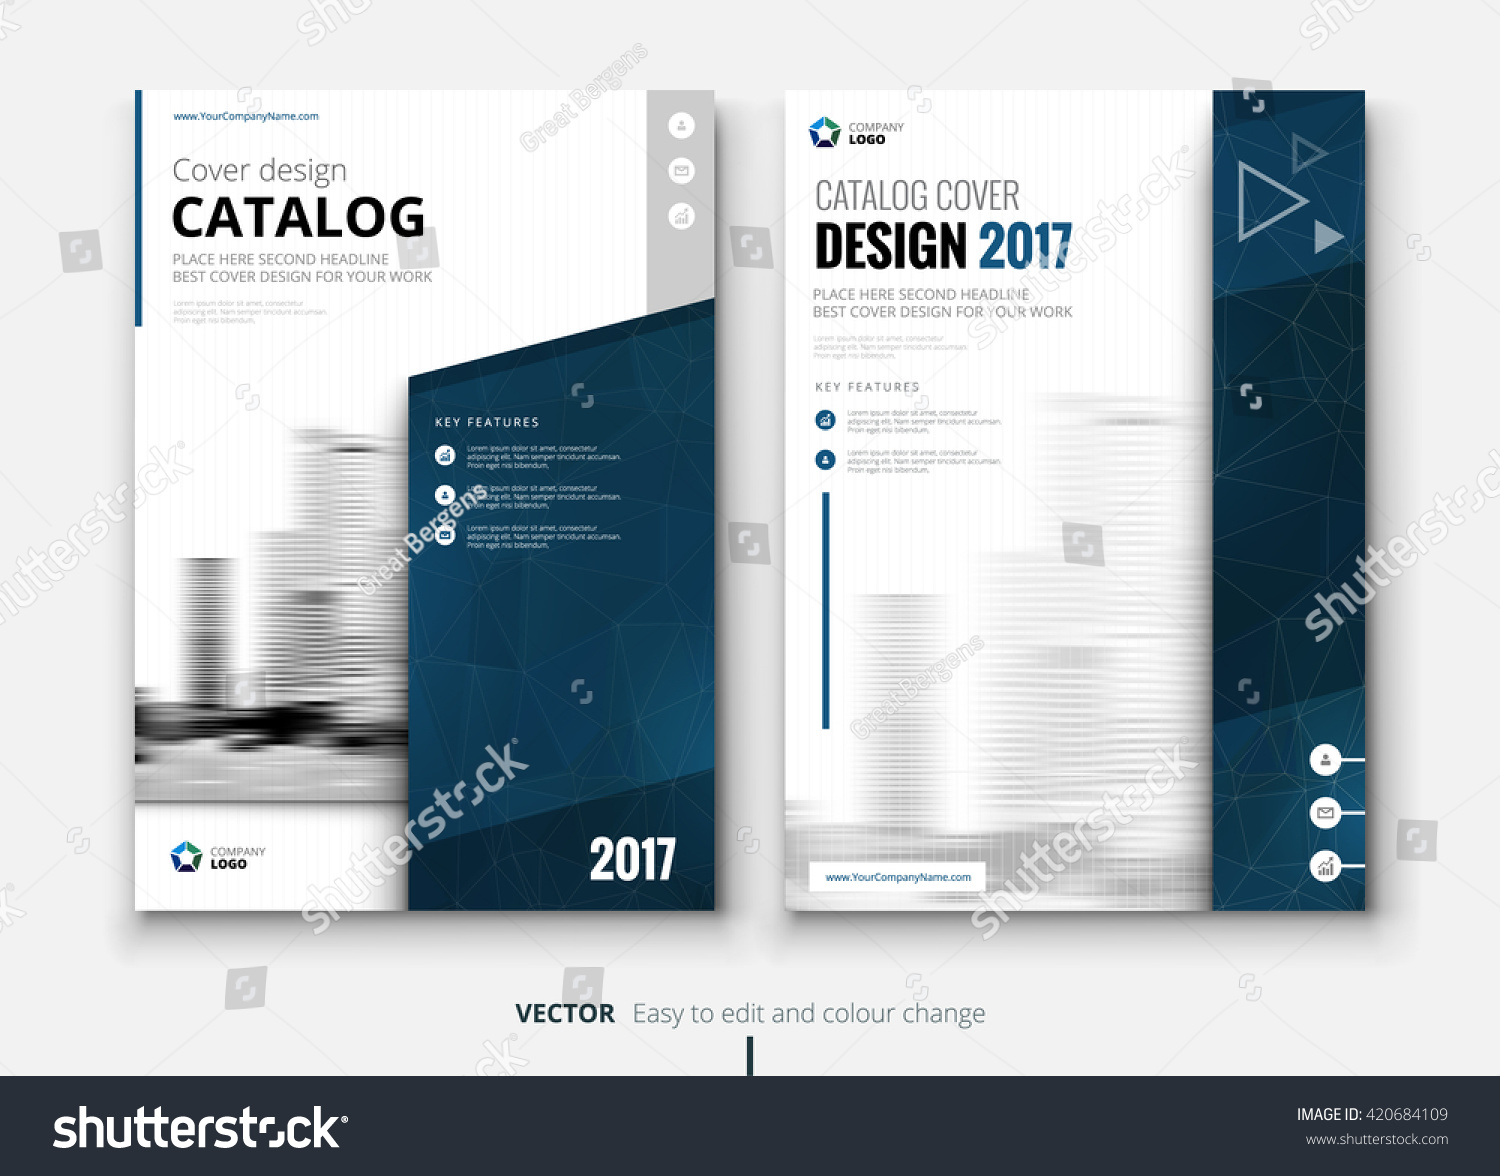 Catalog design layout design corporate business stock Create a blueprint